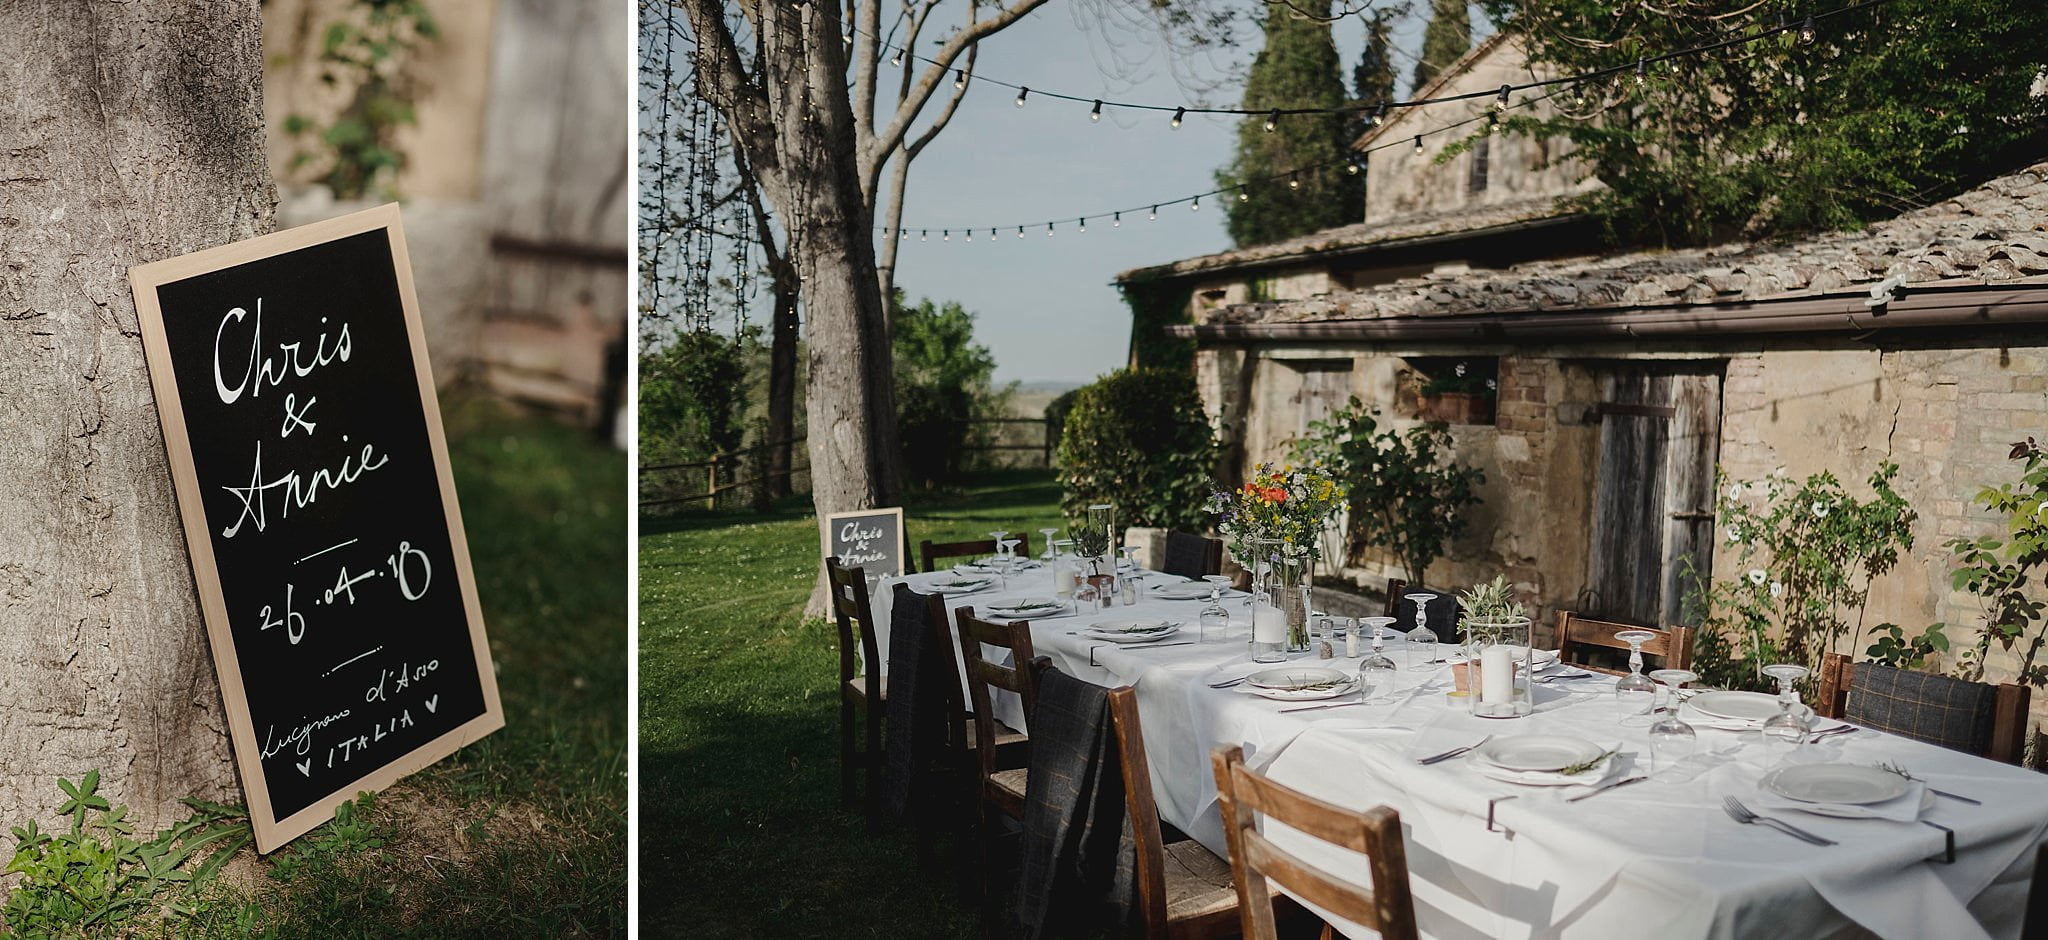 Intimate wedding in tuscany